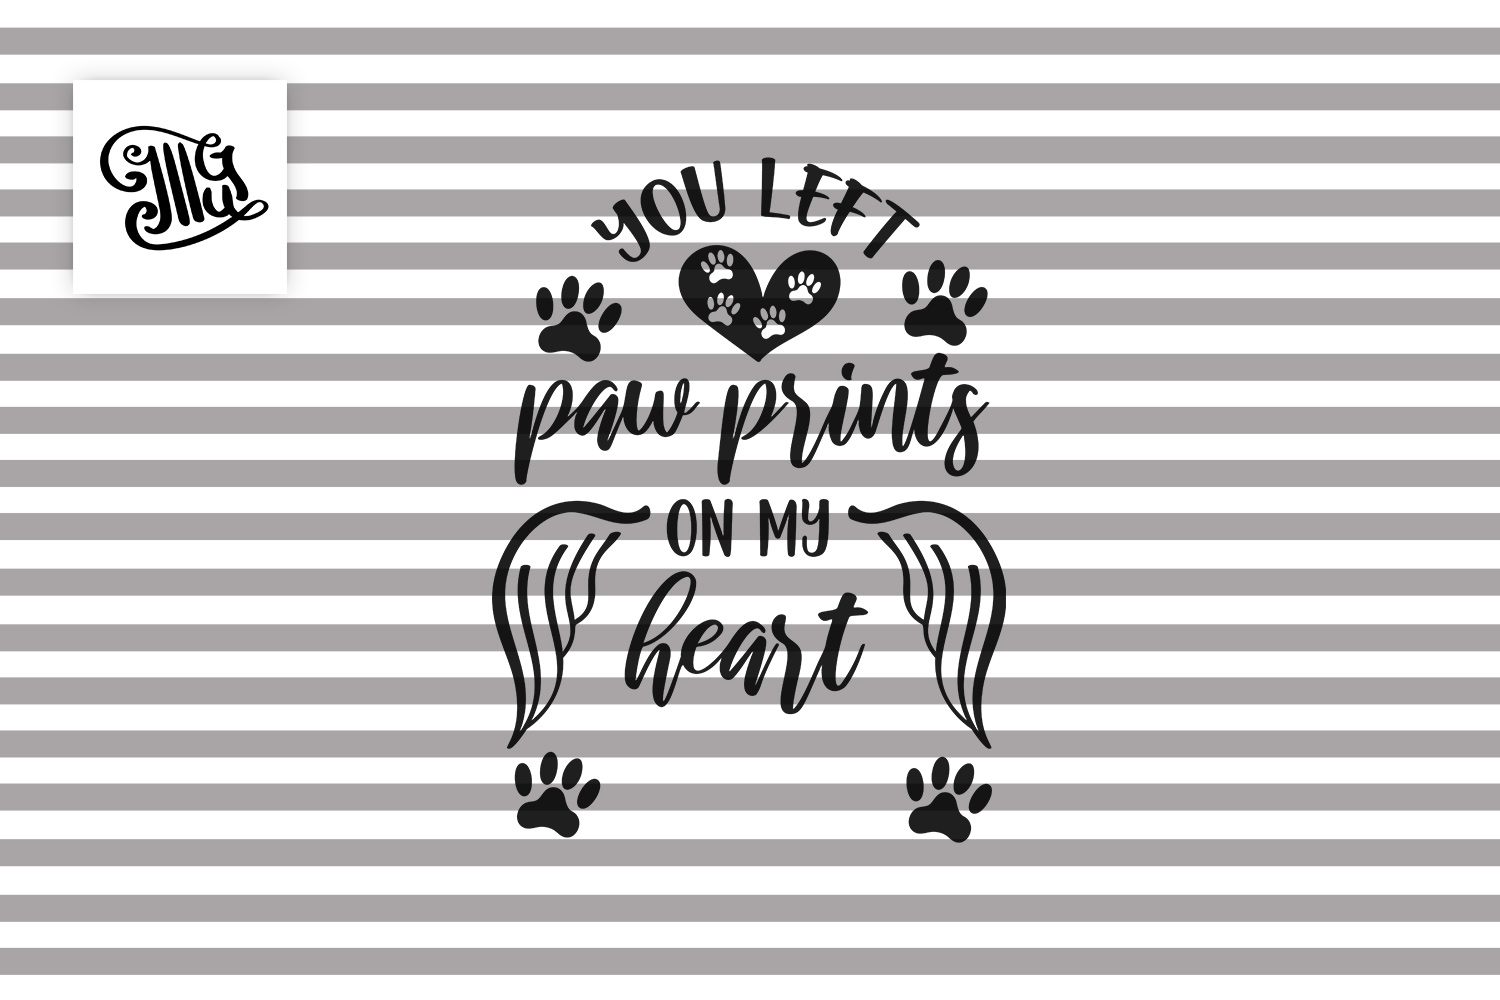 You left paw prints on my heart - Pet, cat, dog Memorial example image 2